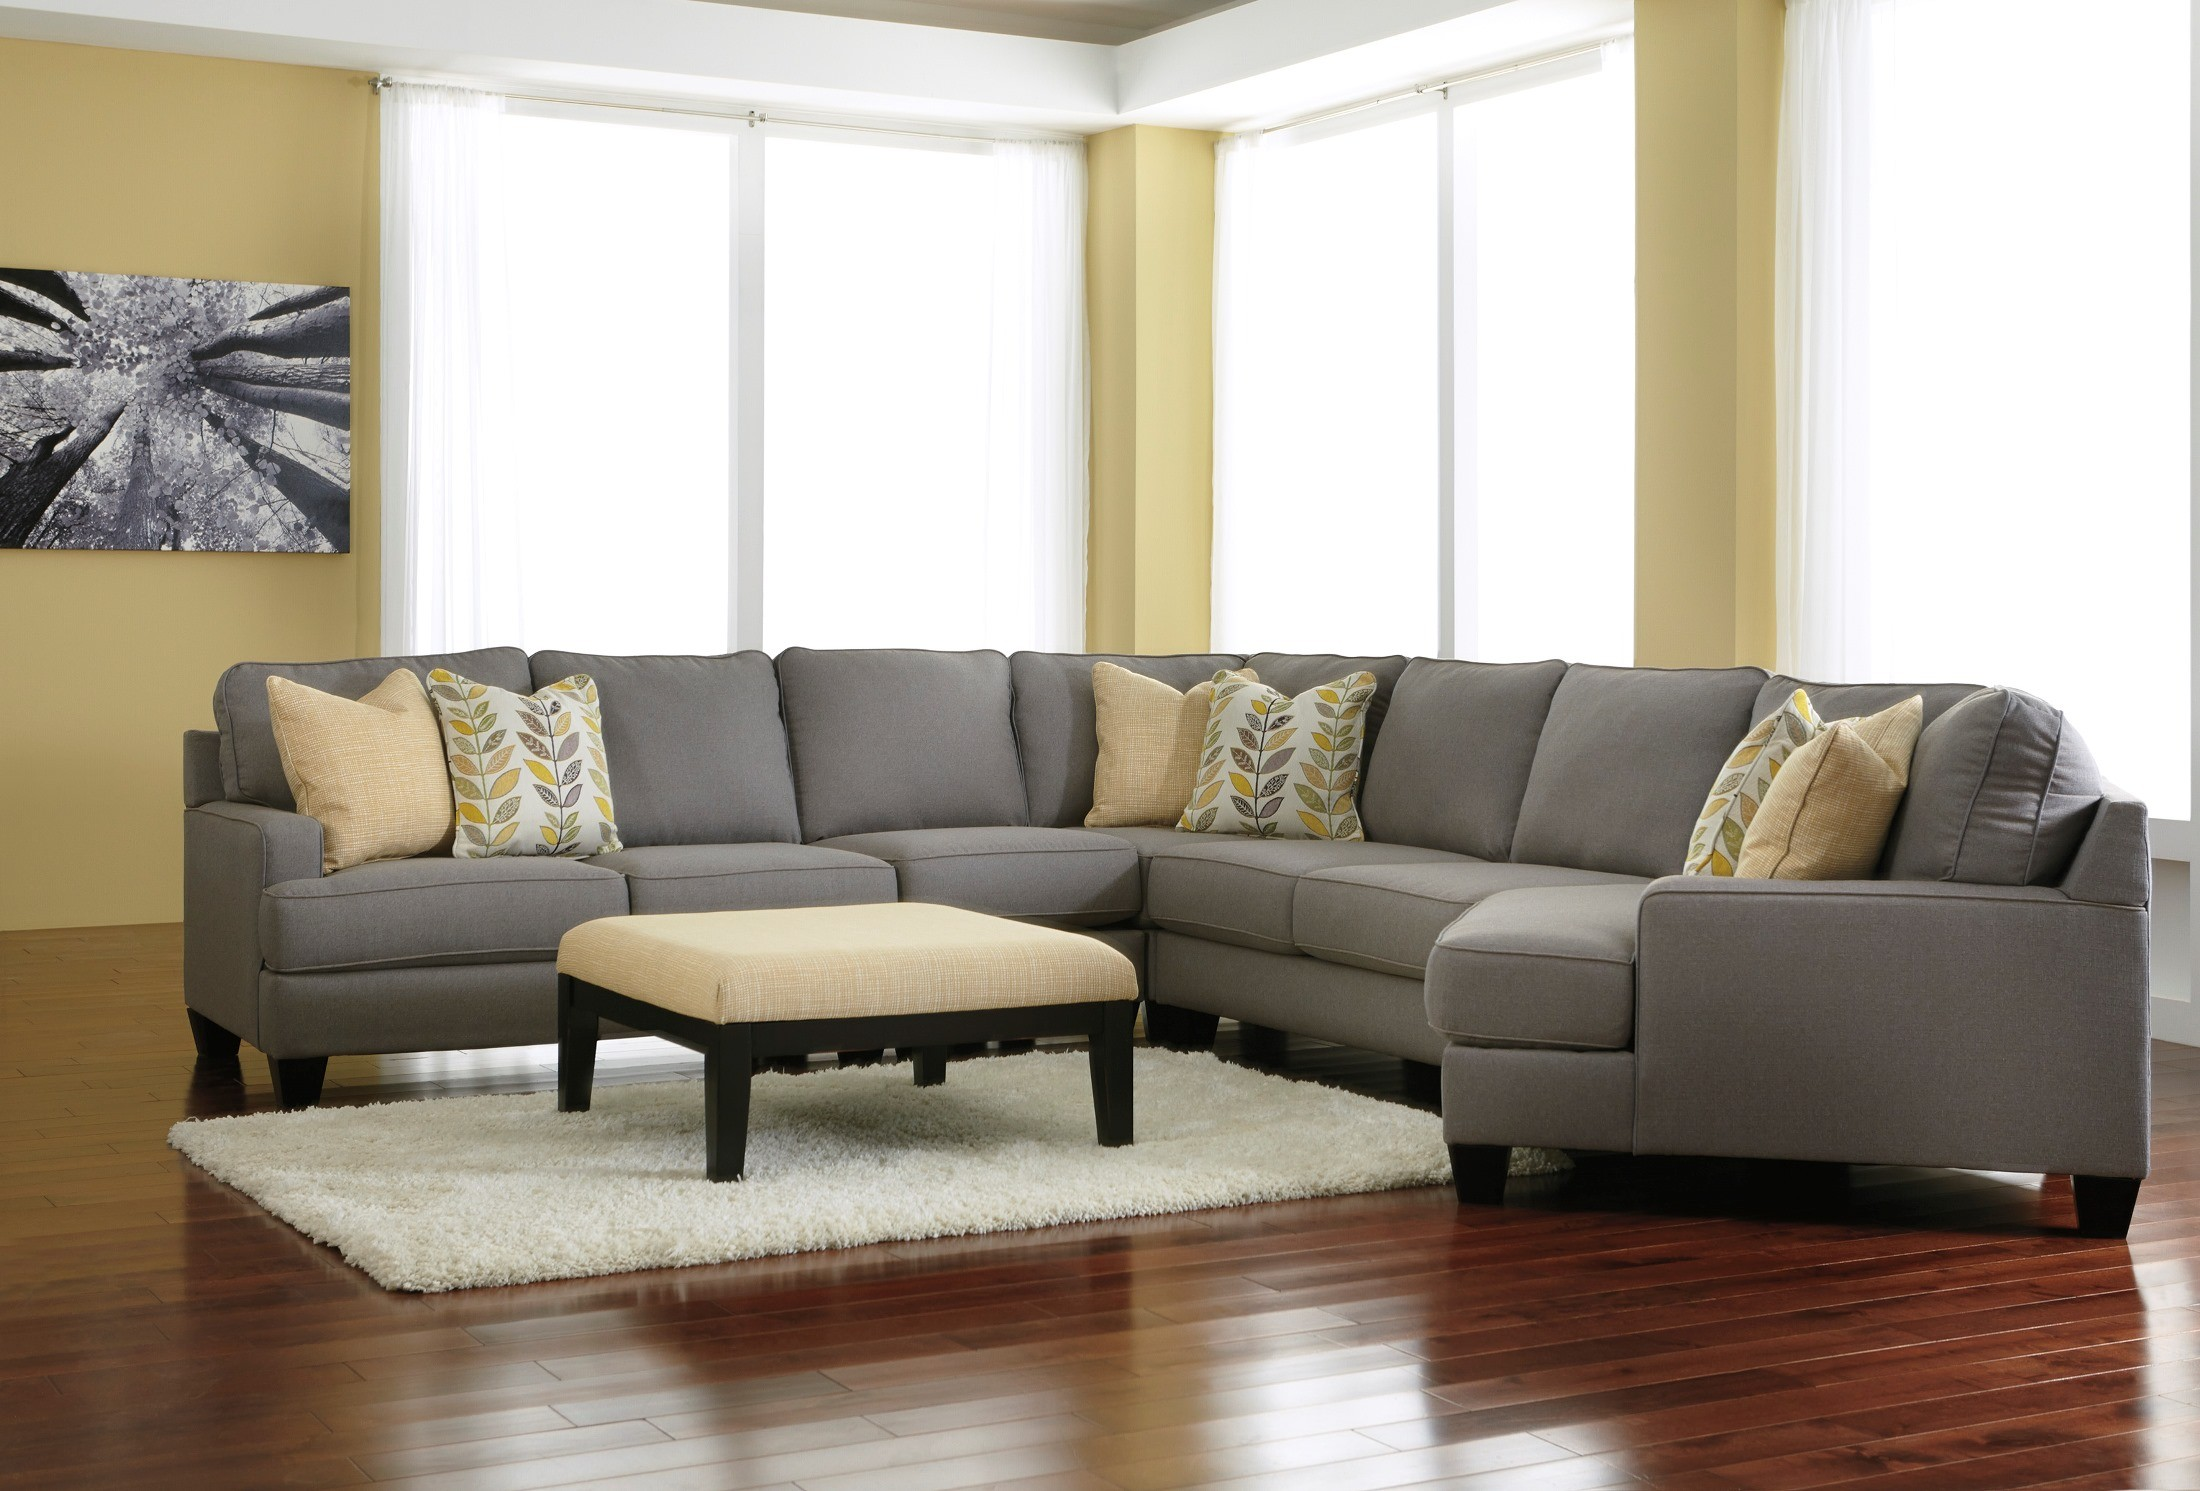 Chamberly Alloy RAF Cuddler Sectional From Ashley 2430275